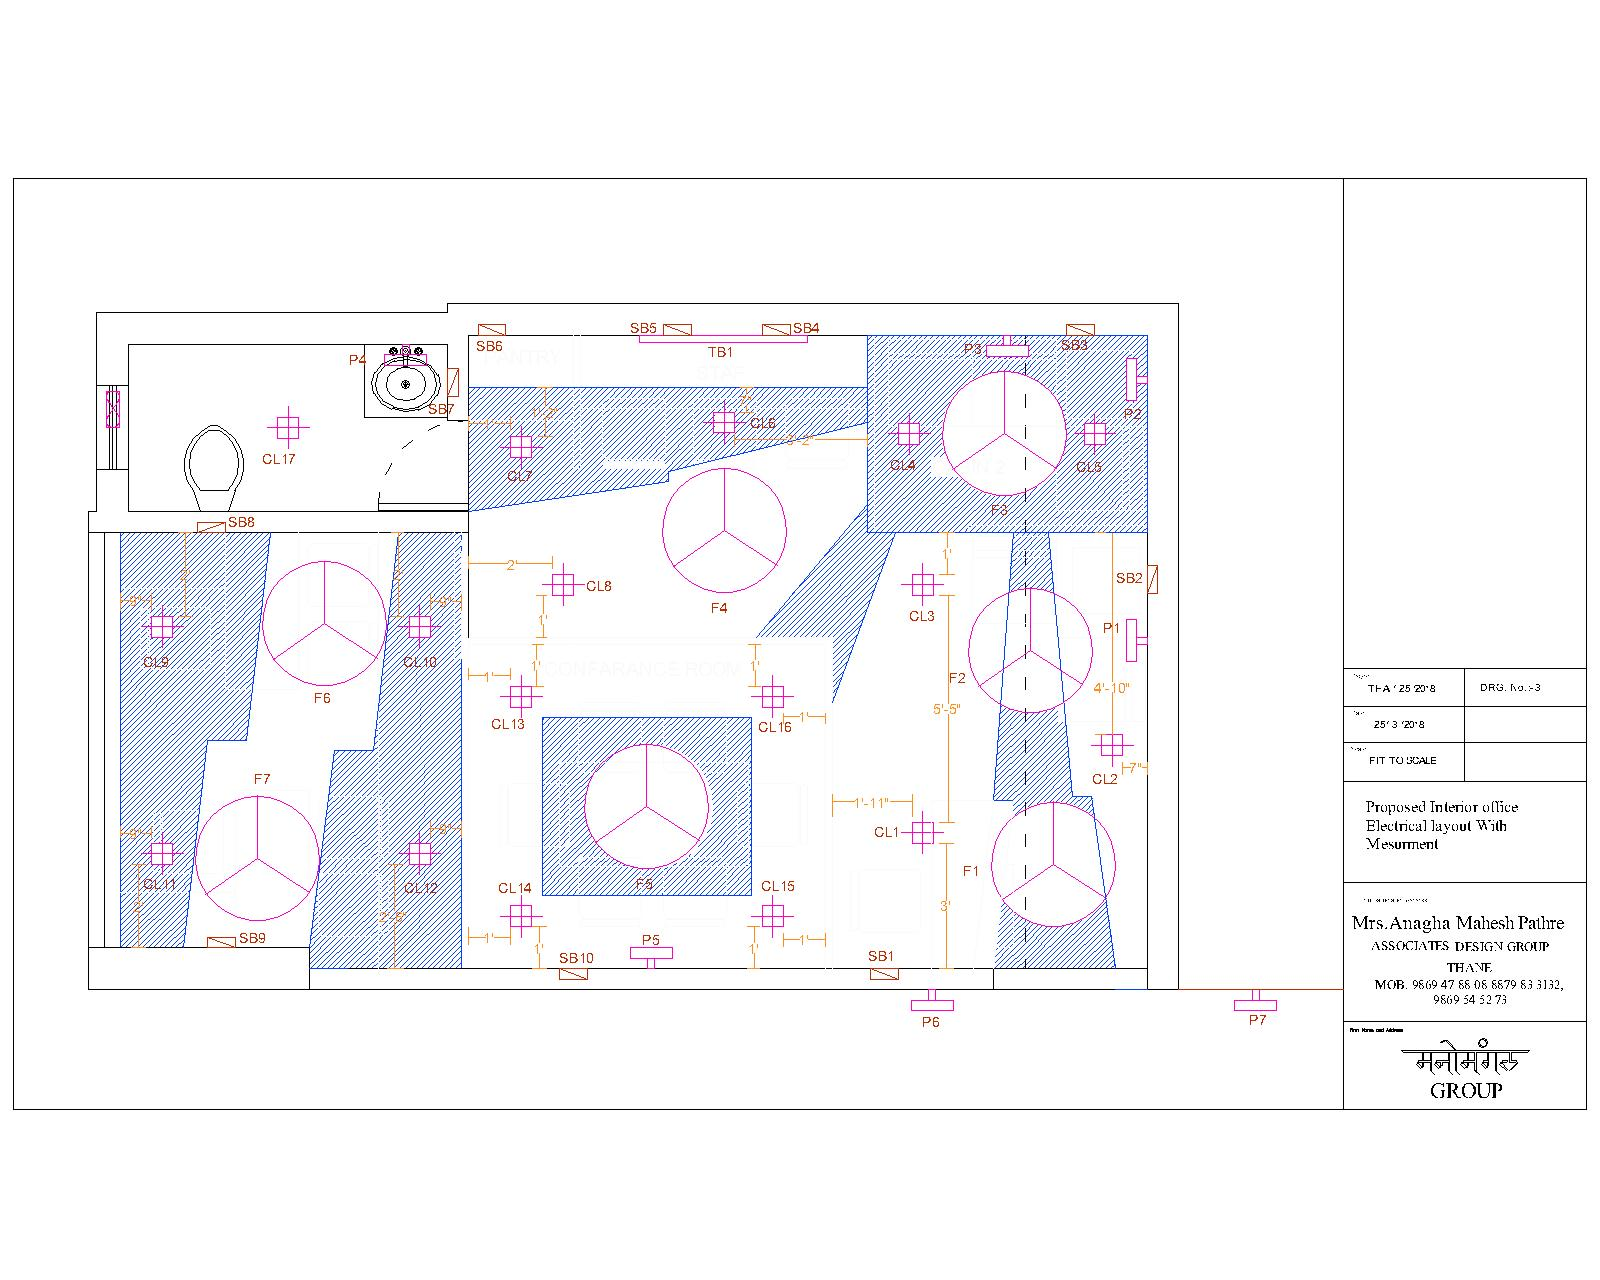 office-Electrical-layout..jpg